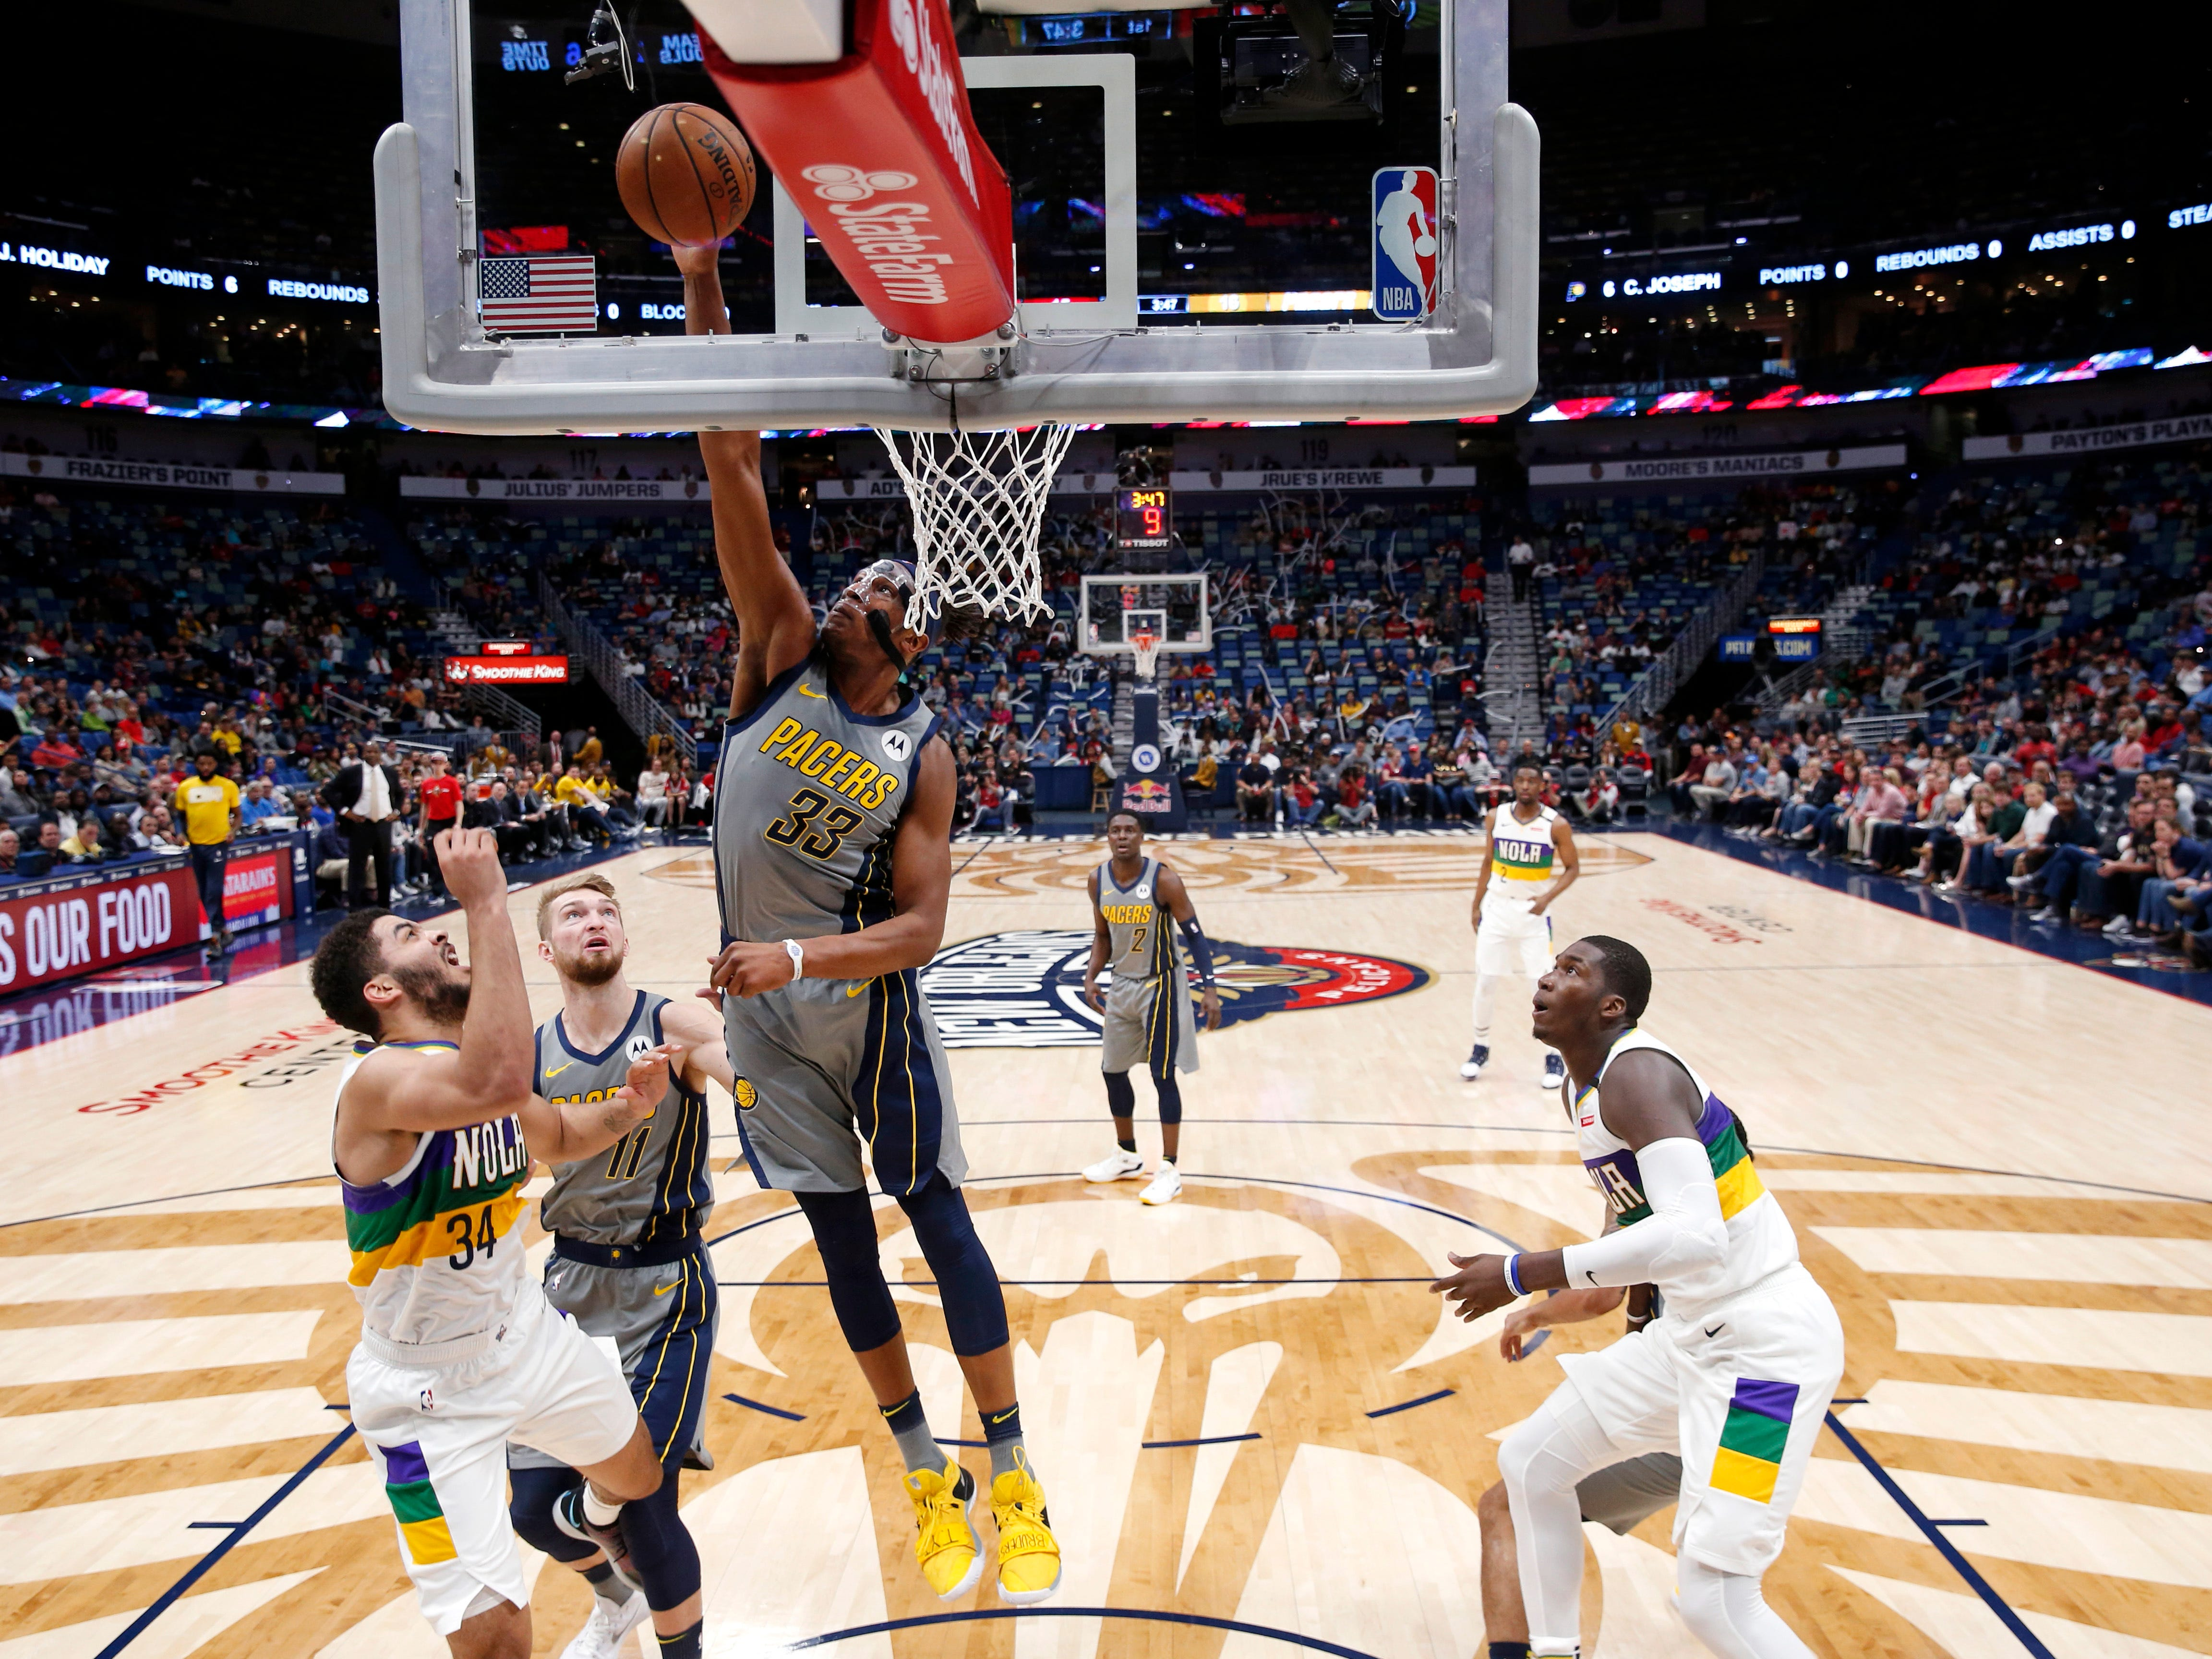 Indiana Pacers center Myles Turner (33) pulls down rebound over New Orleans Pelicans guard Kenrich Williams (34) in the first half of an NBA basketball game in New Orleans, Monday, Feb. 4, 2019.